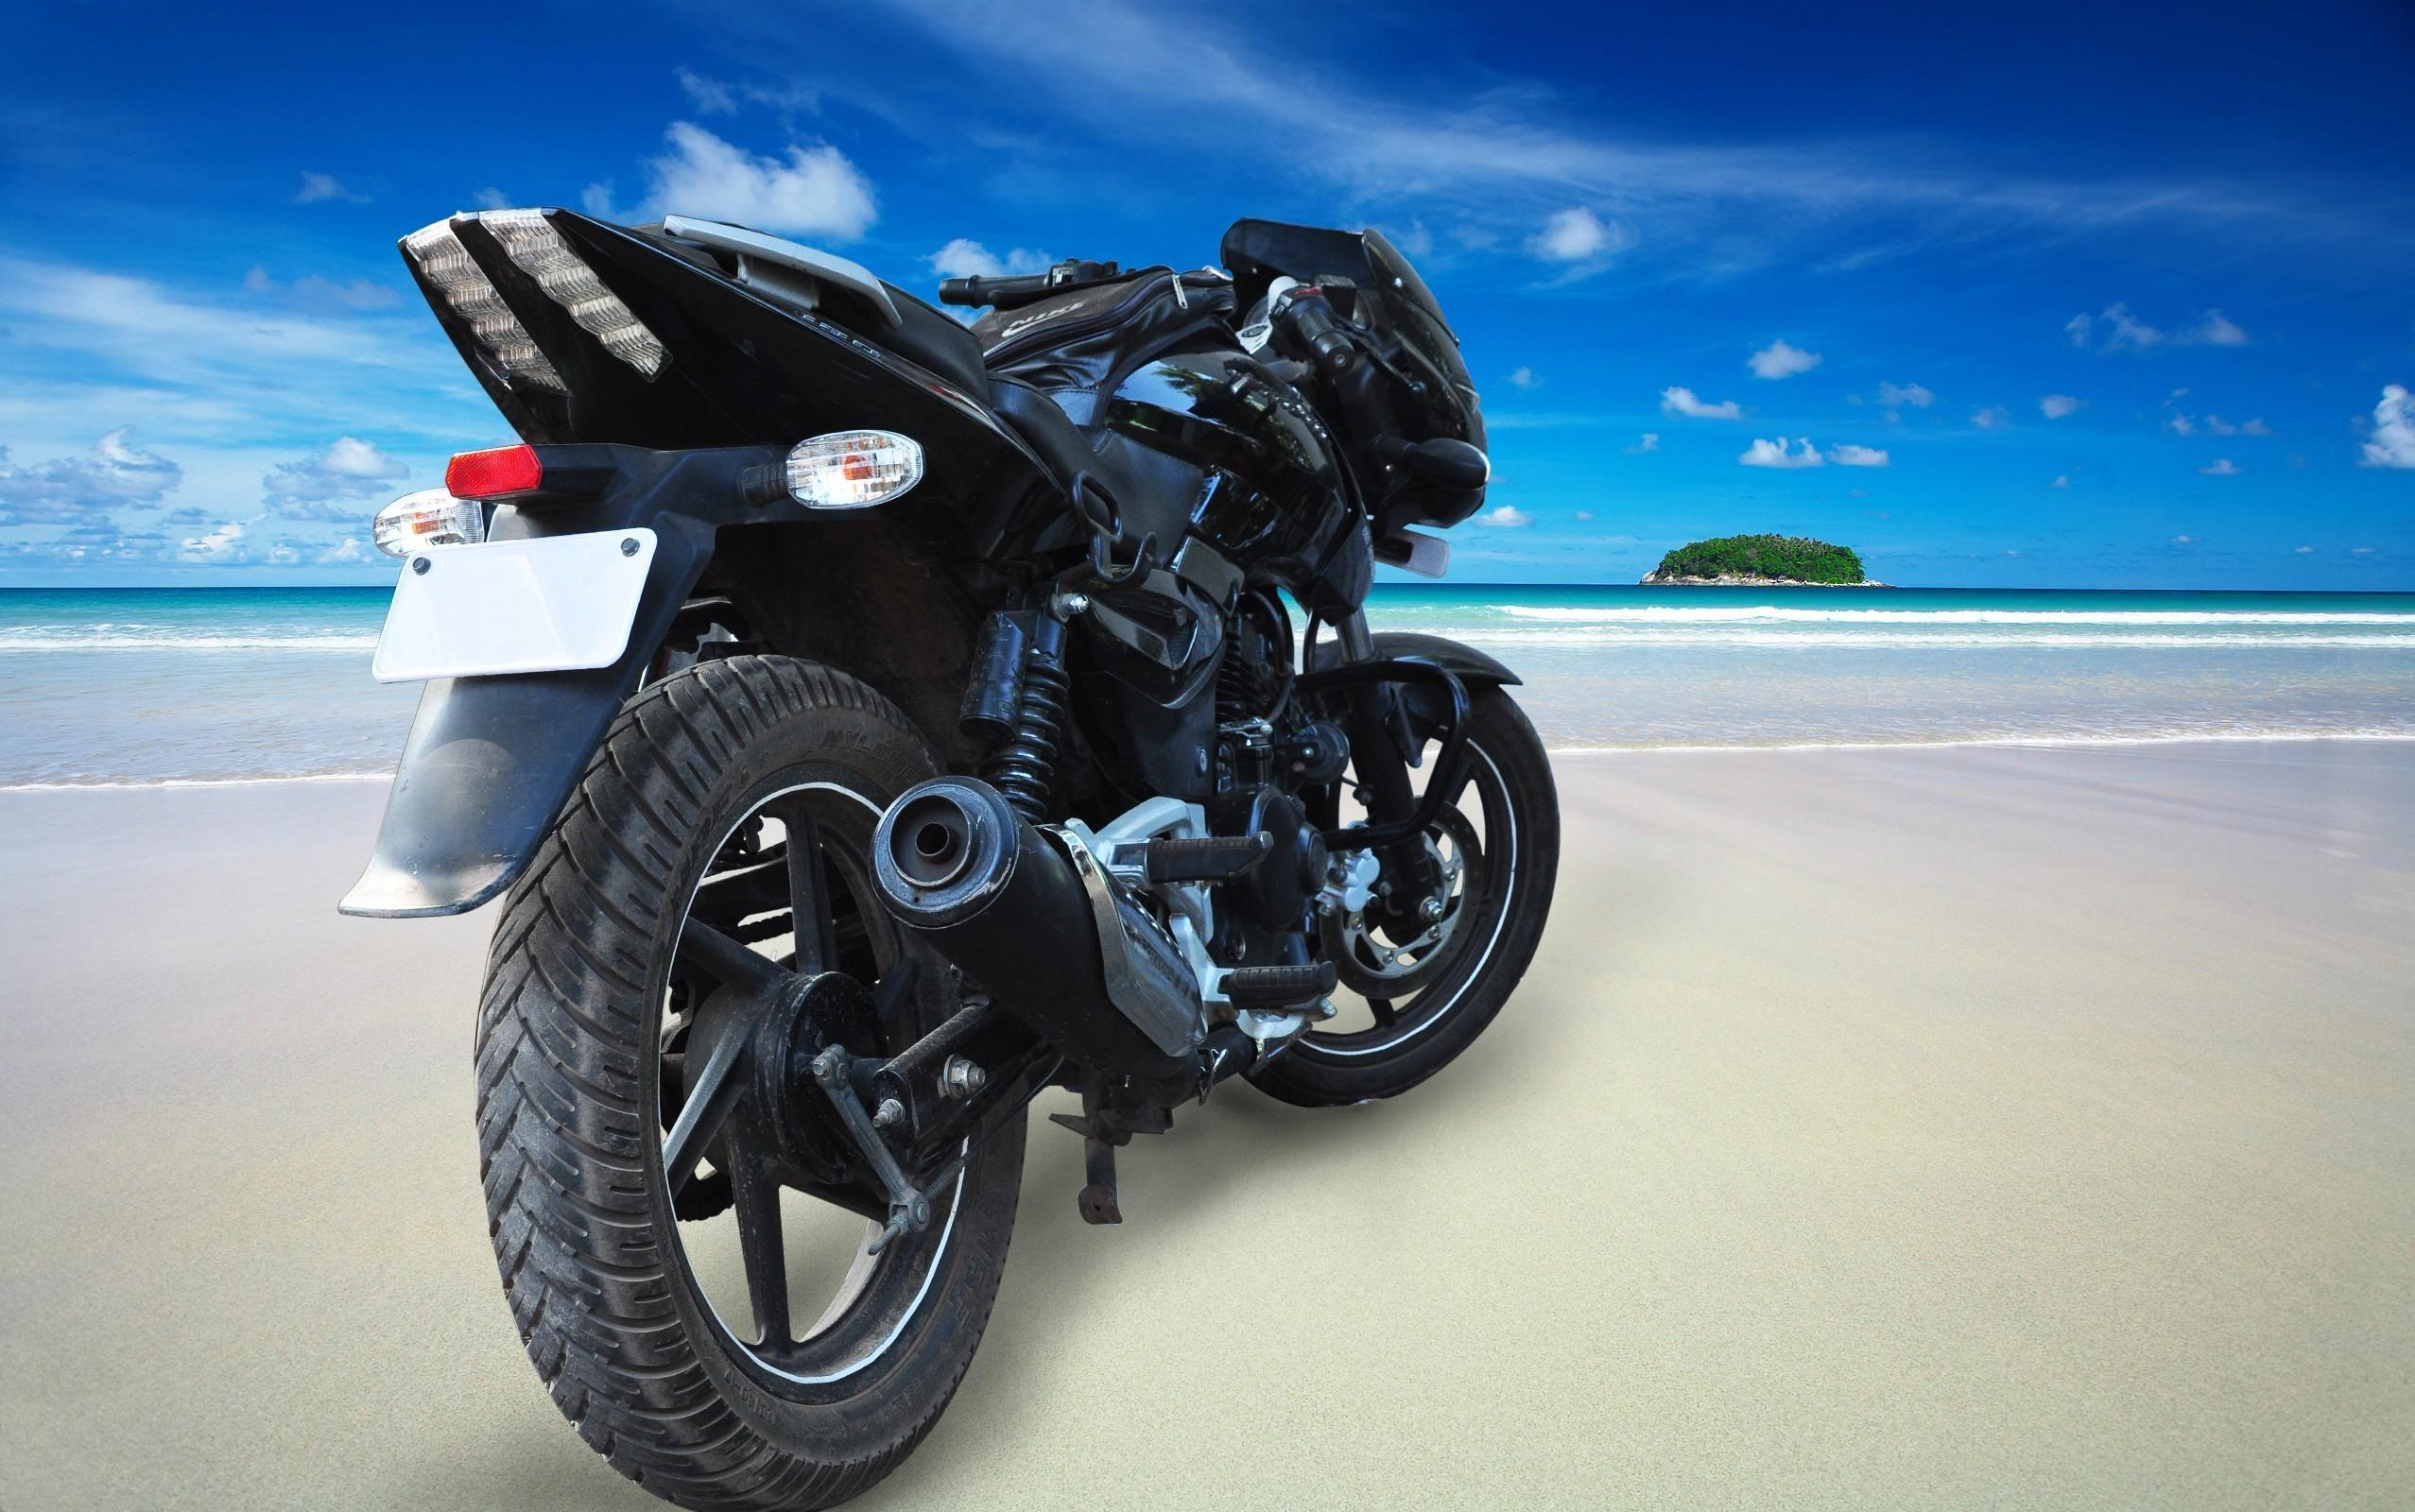 Bajaj pulsar bike hd wallpaper bajaj pulsar bike wallpaper pinterest